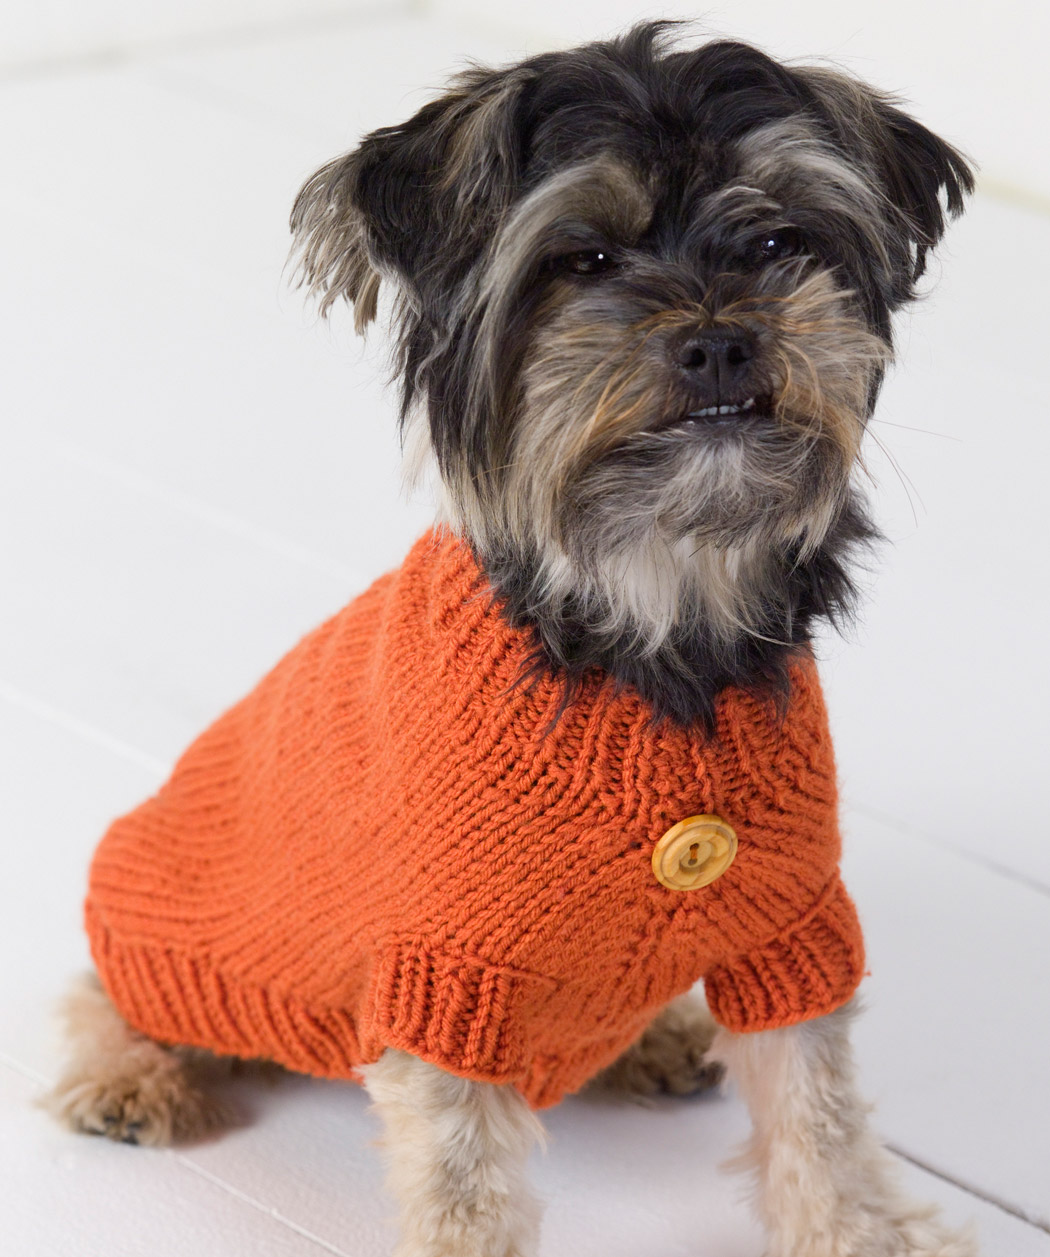 Dog Sweater Knitting Pattern | A Knitting Blog